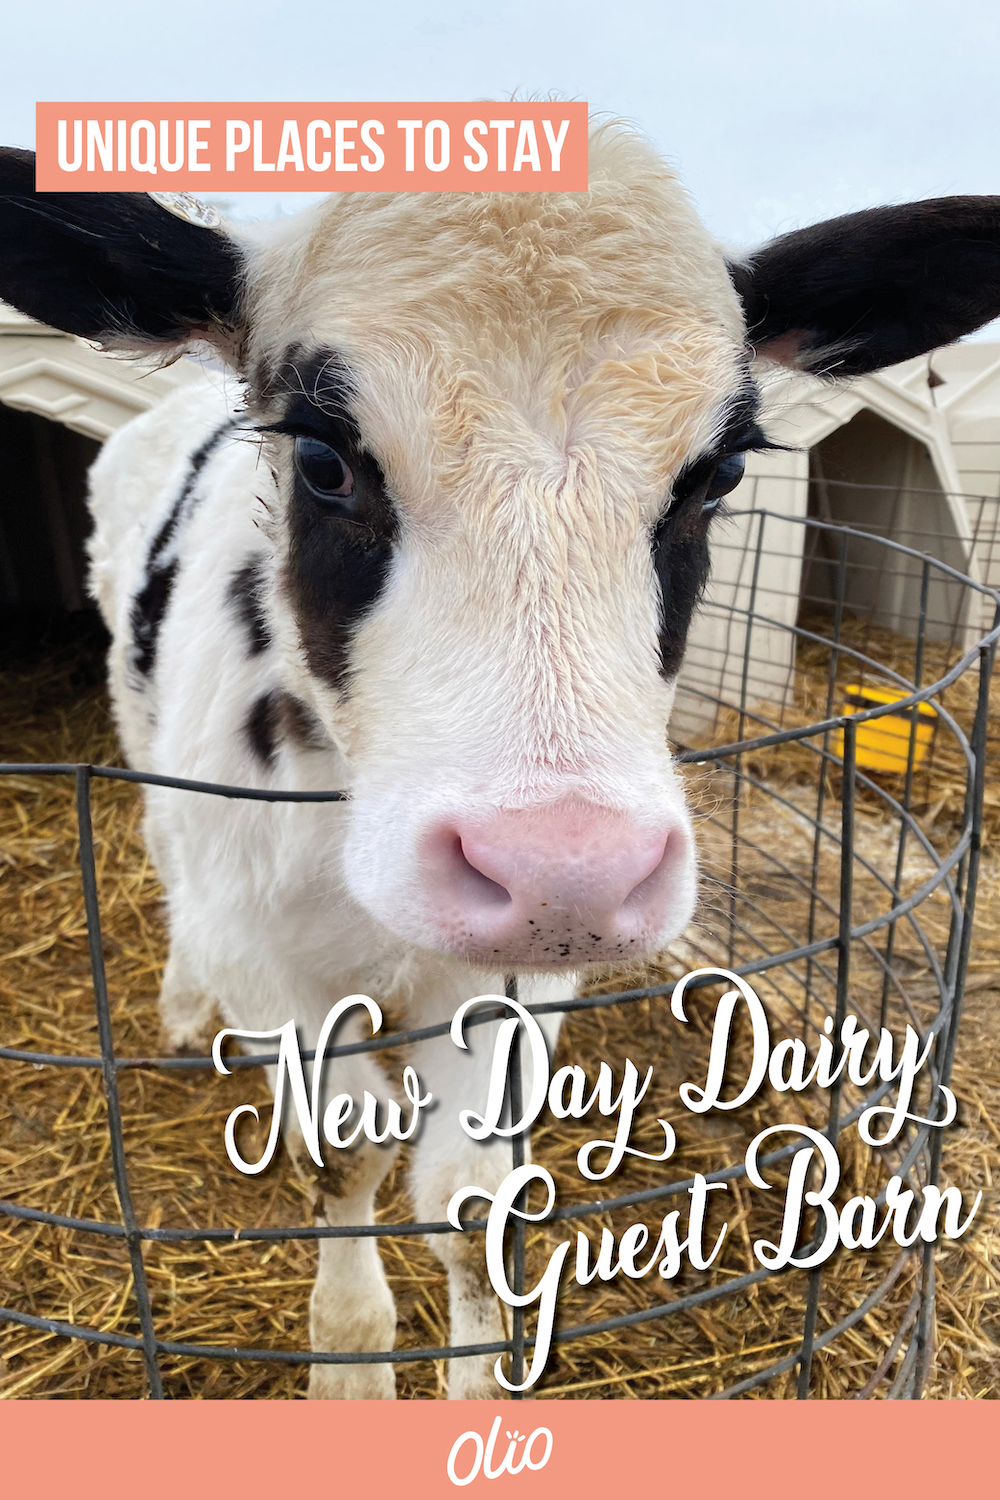 Looking for a unique Iowa weekend getaway? Plan a visit to the New Day Dairy Guest Barn in Clarksville, Iowa! This fun accommodation at a working dairy farm will give you the perfect place to relax while getting a behind-the-scenes look at what it takes to be a dairy farmer. #Iowa #Midwest #travel #MidwestGetaway